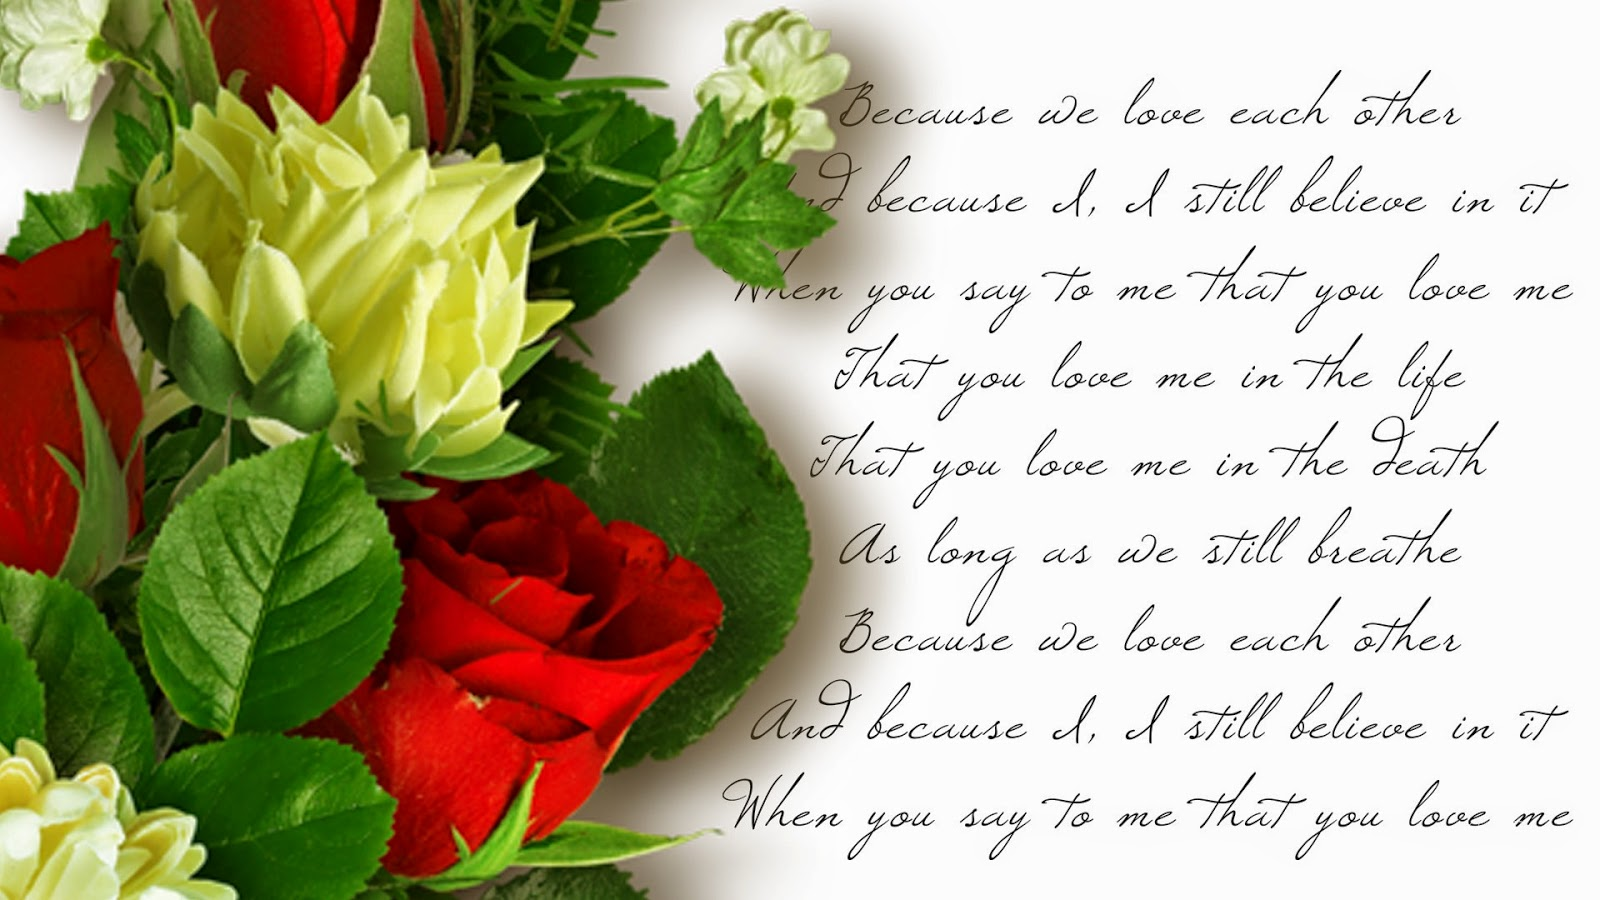 Flower Love Quotes Beautiful Love Quotes For Her With Rose Flower Images